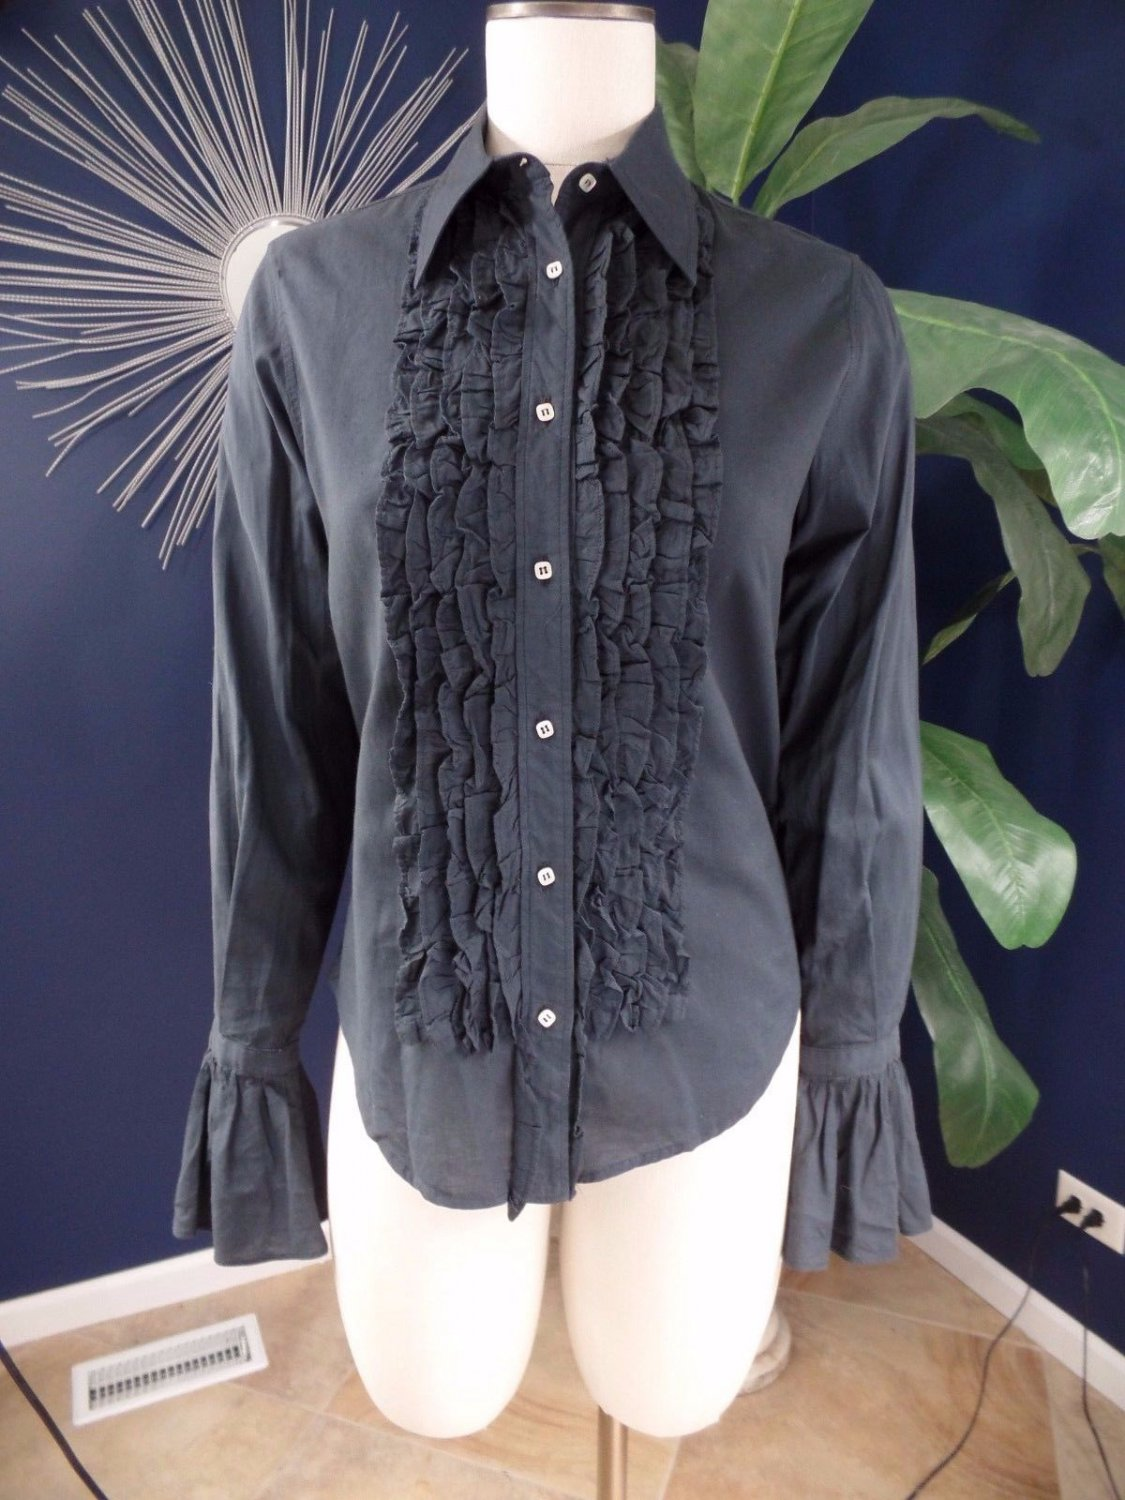 Miguel Ibars Gray 100% Cotton Ruffled Button Front Top Blouse Shirt S